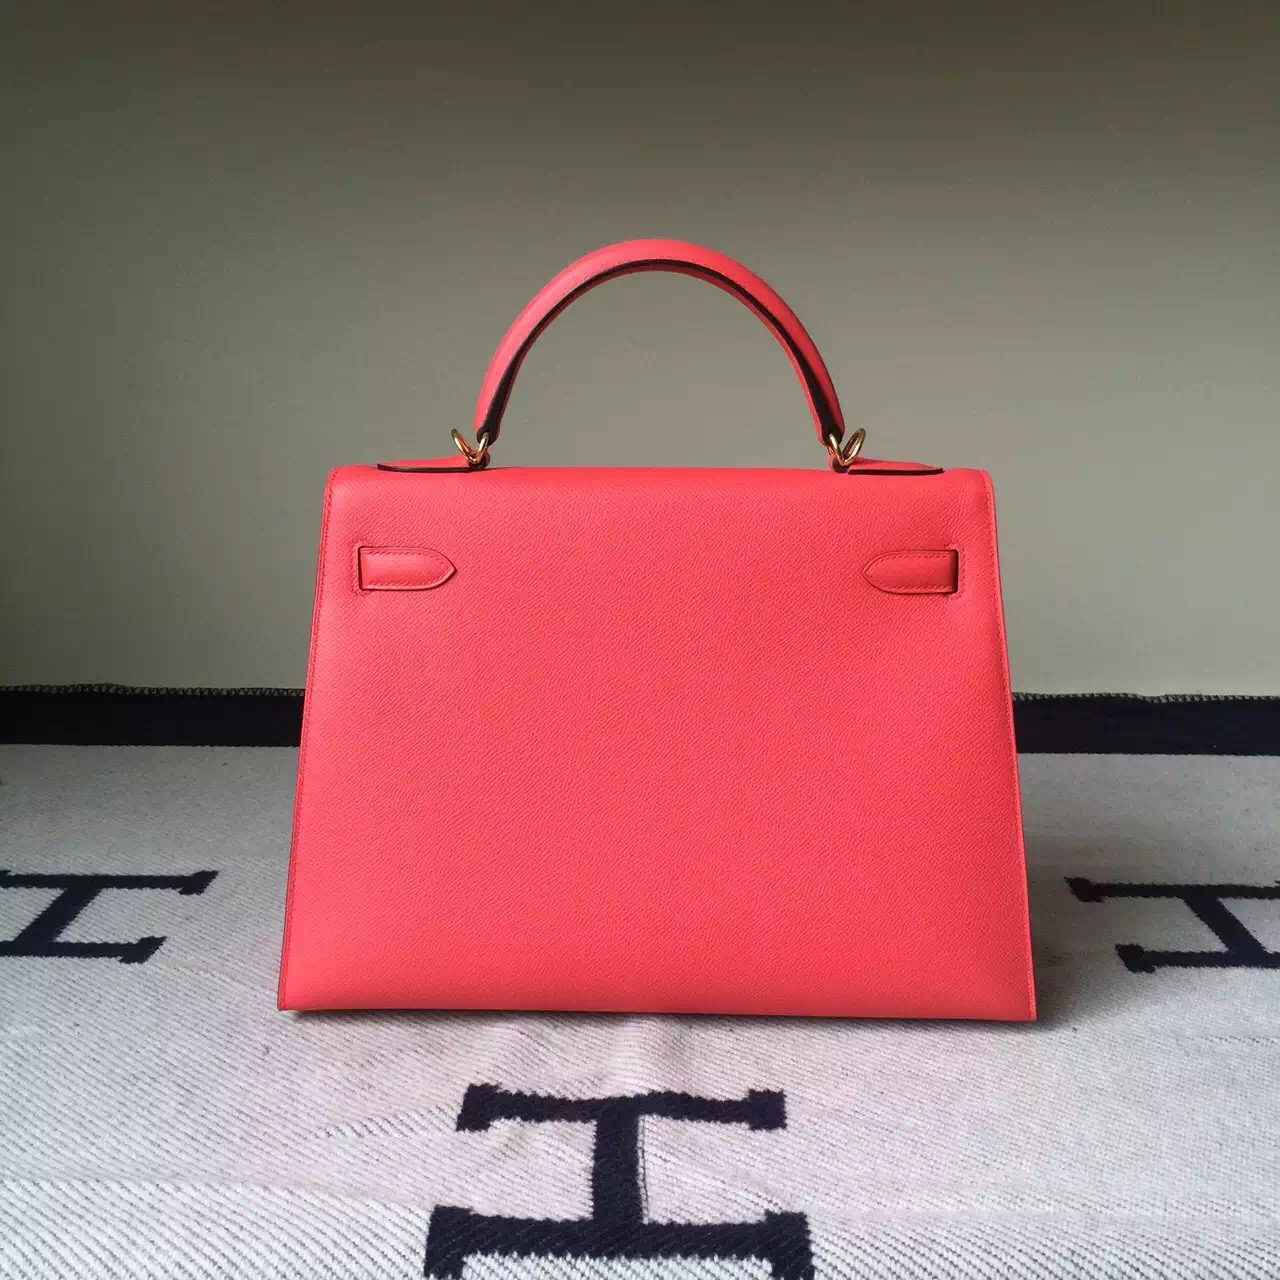 Discount Hermes Epsom Leather Sellier Kelly Bag 32cm in 5T Peach Pink